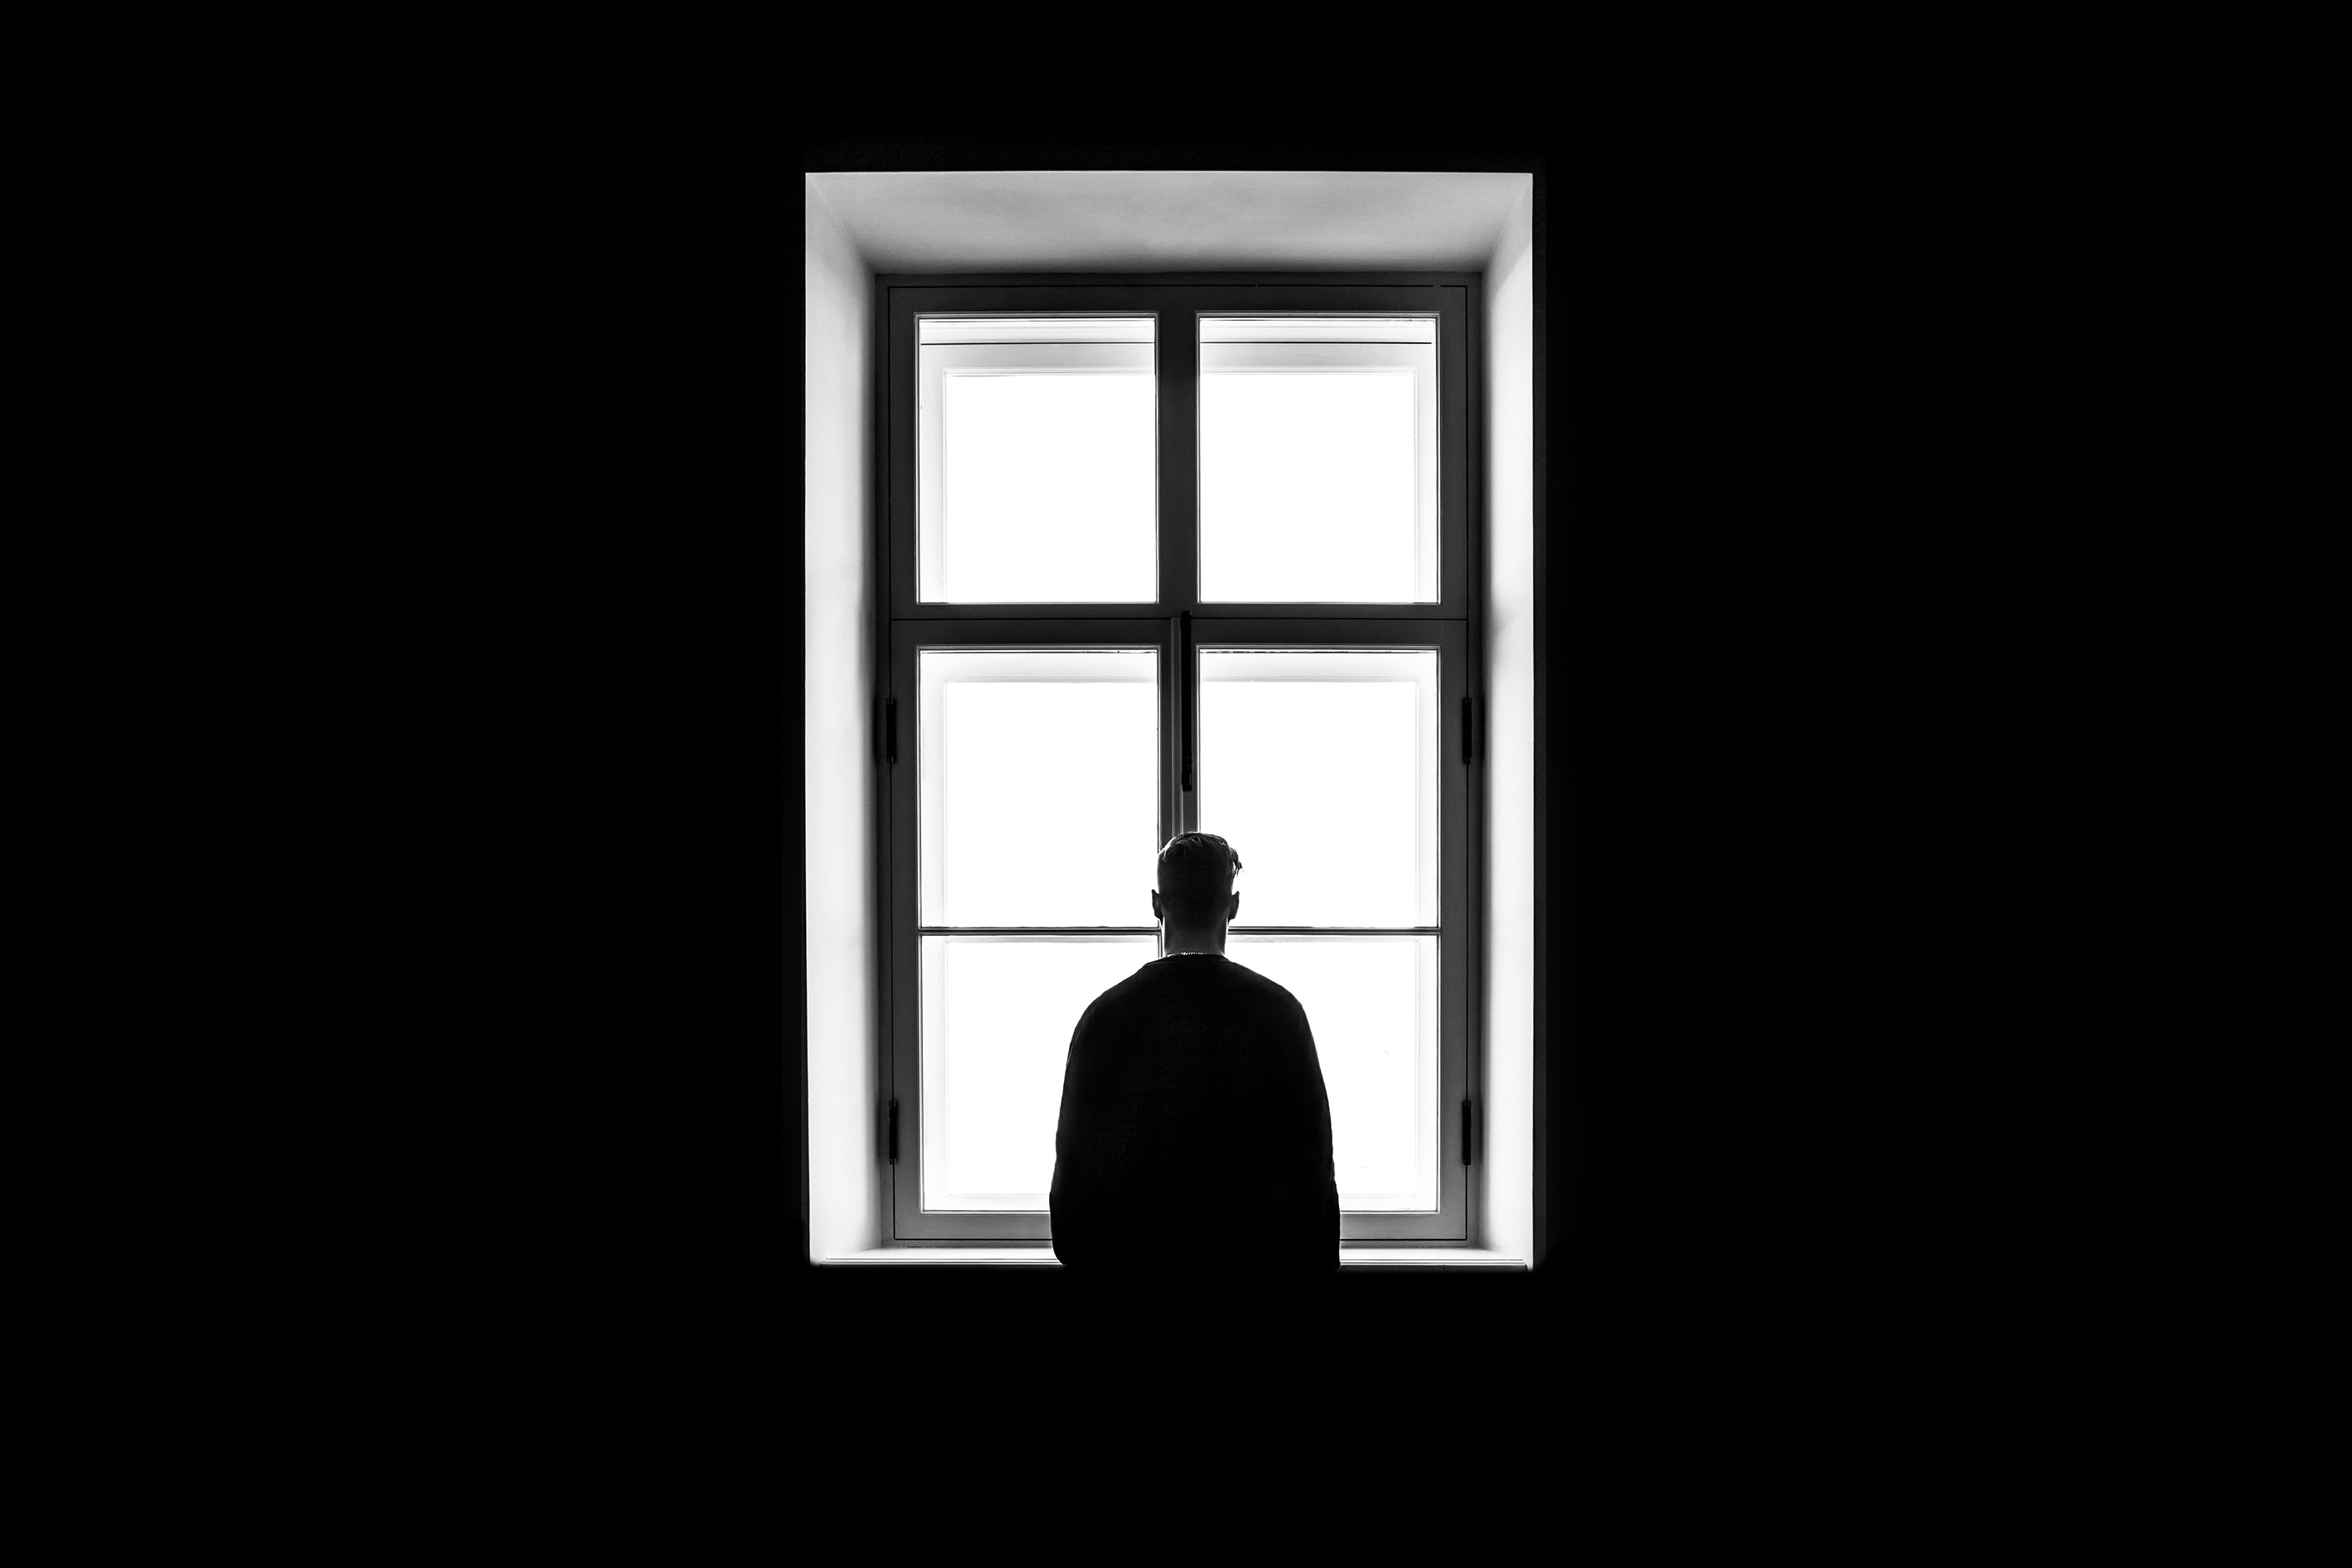 96935 Screensavers and Wallpapers Bw for phone. Download Minimalism, Bw, Chb, Window, Man, Loneliness pictures for free